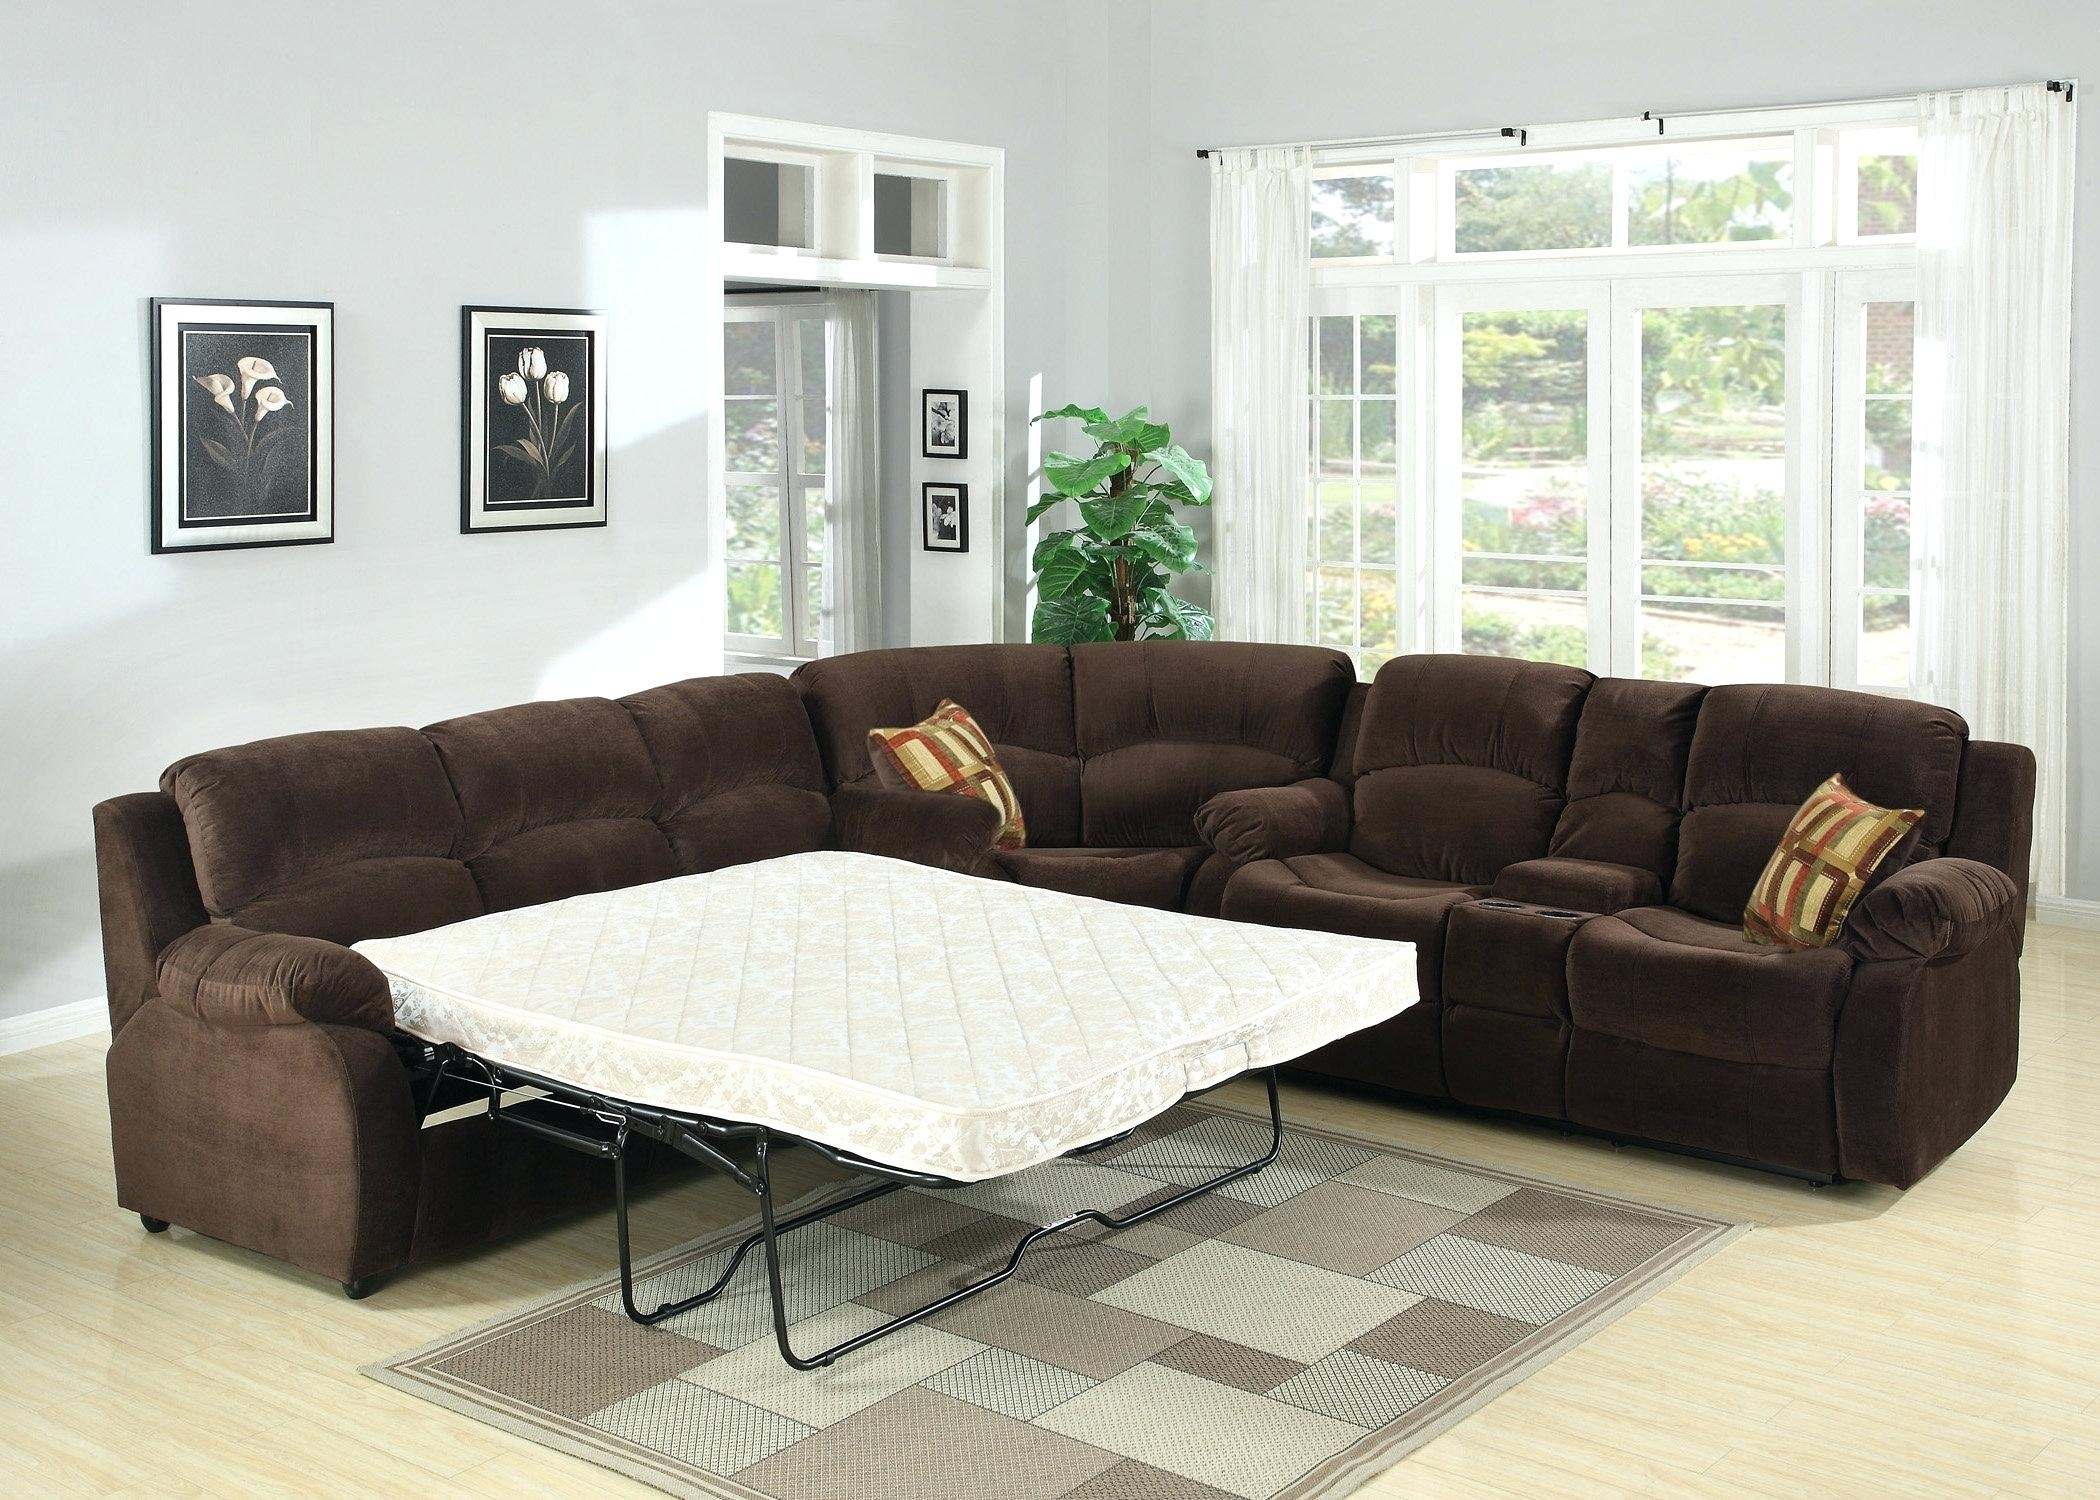 Decoration: Sofas That Turn Into Beds Sleeper Sectional Couch Sofa Within Sectional Sofas That Turn Into Beds (Image 3 of 10)